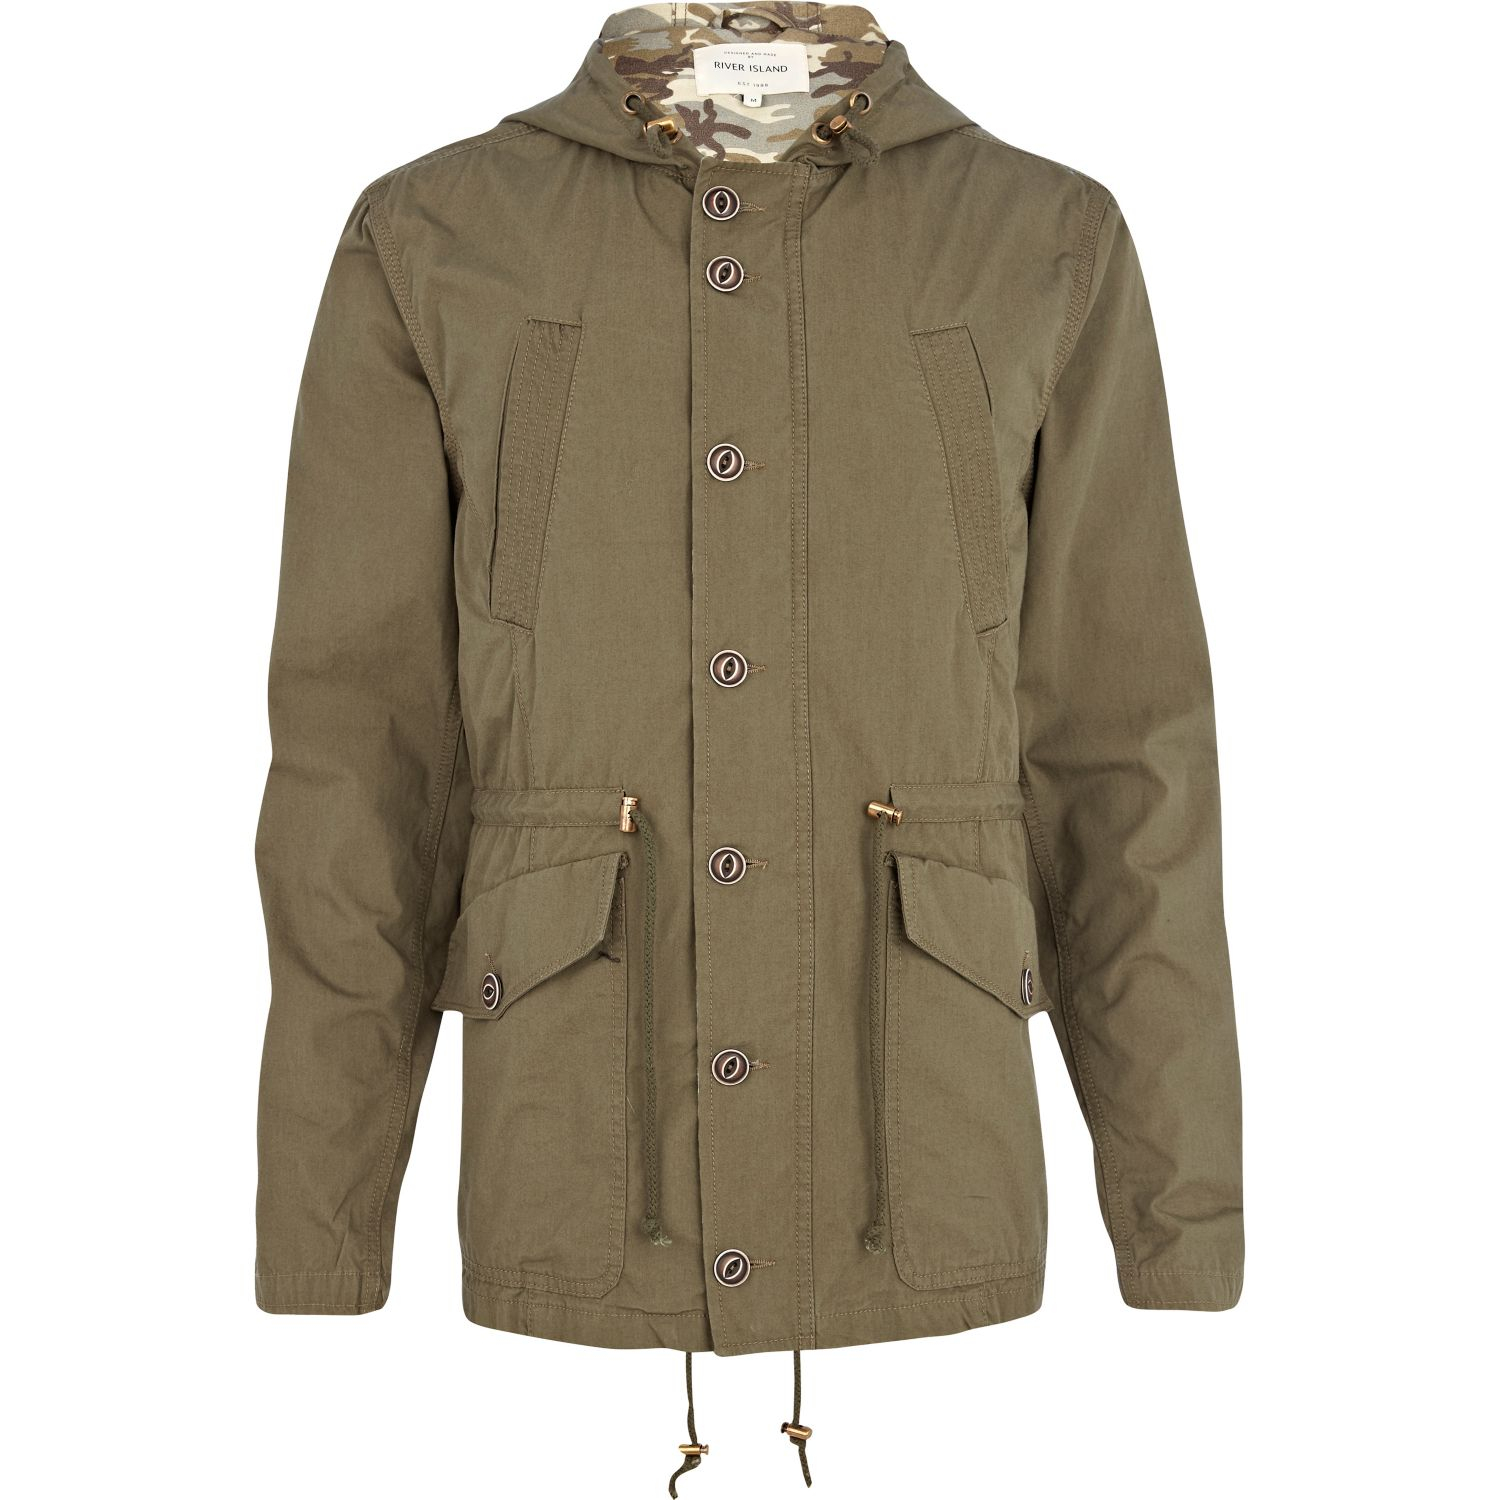 Layered with a ribbed collar, this long parka is made smooth cotton poplin with subtle padding at the body and hood for added warmth. Fully lined with a hidden inside pocket, it has raglan sleeves, a front pleat for a double-layered look and it is fastened with a concealed metal zip and press-studs.